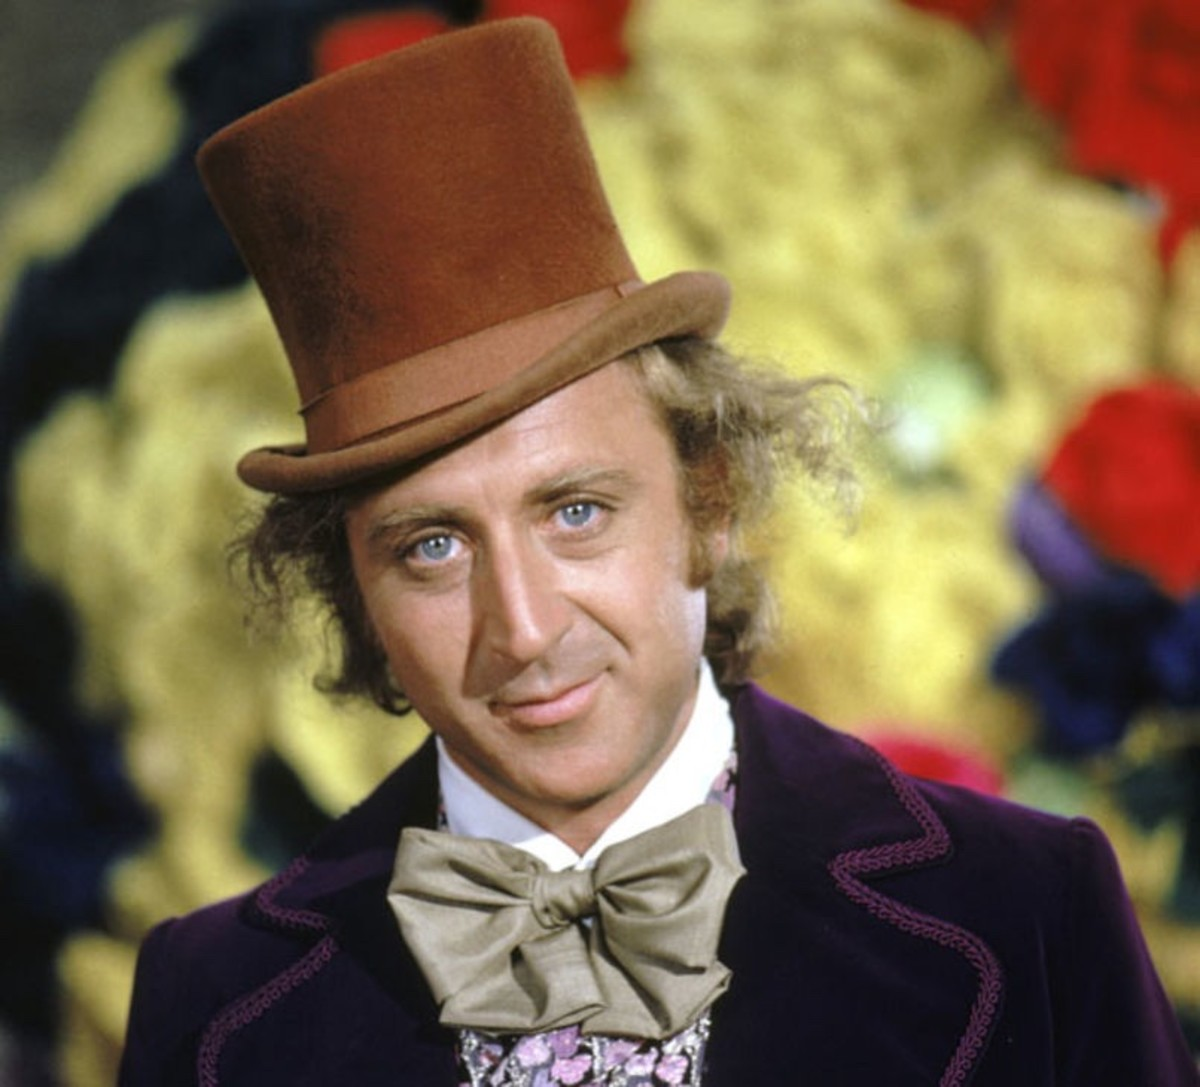 Gene Wilder Photo By Silver Screen Collection/Hulton Archive/Getty Images